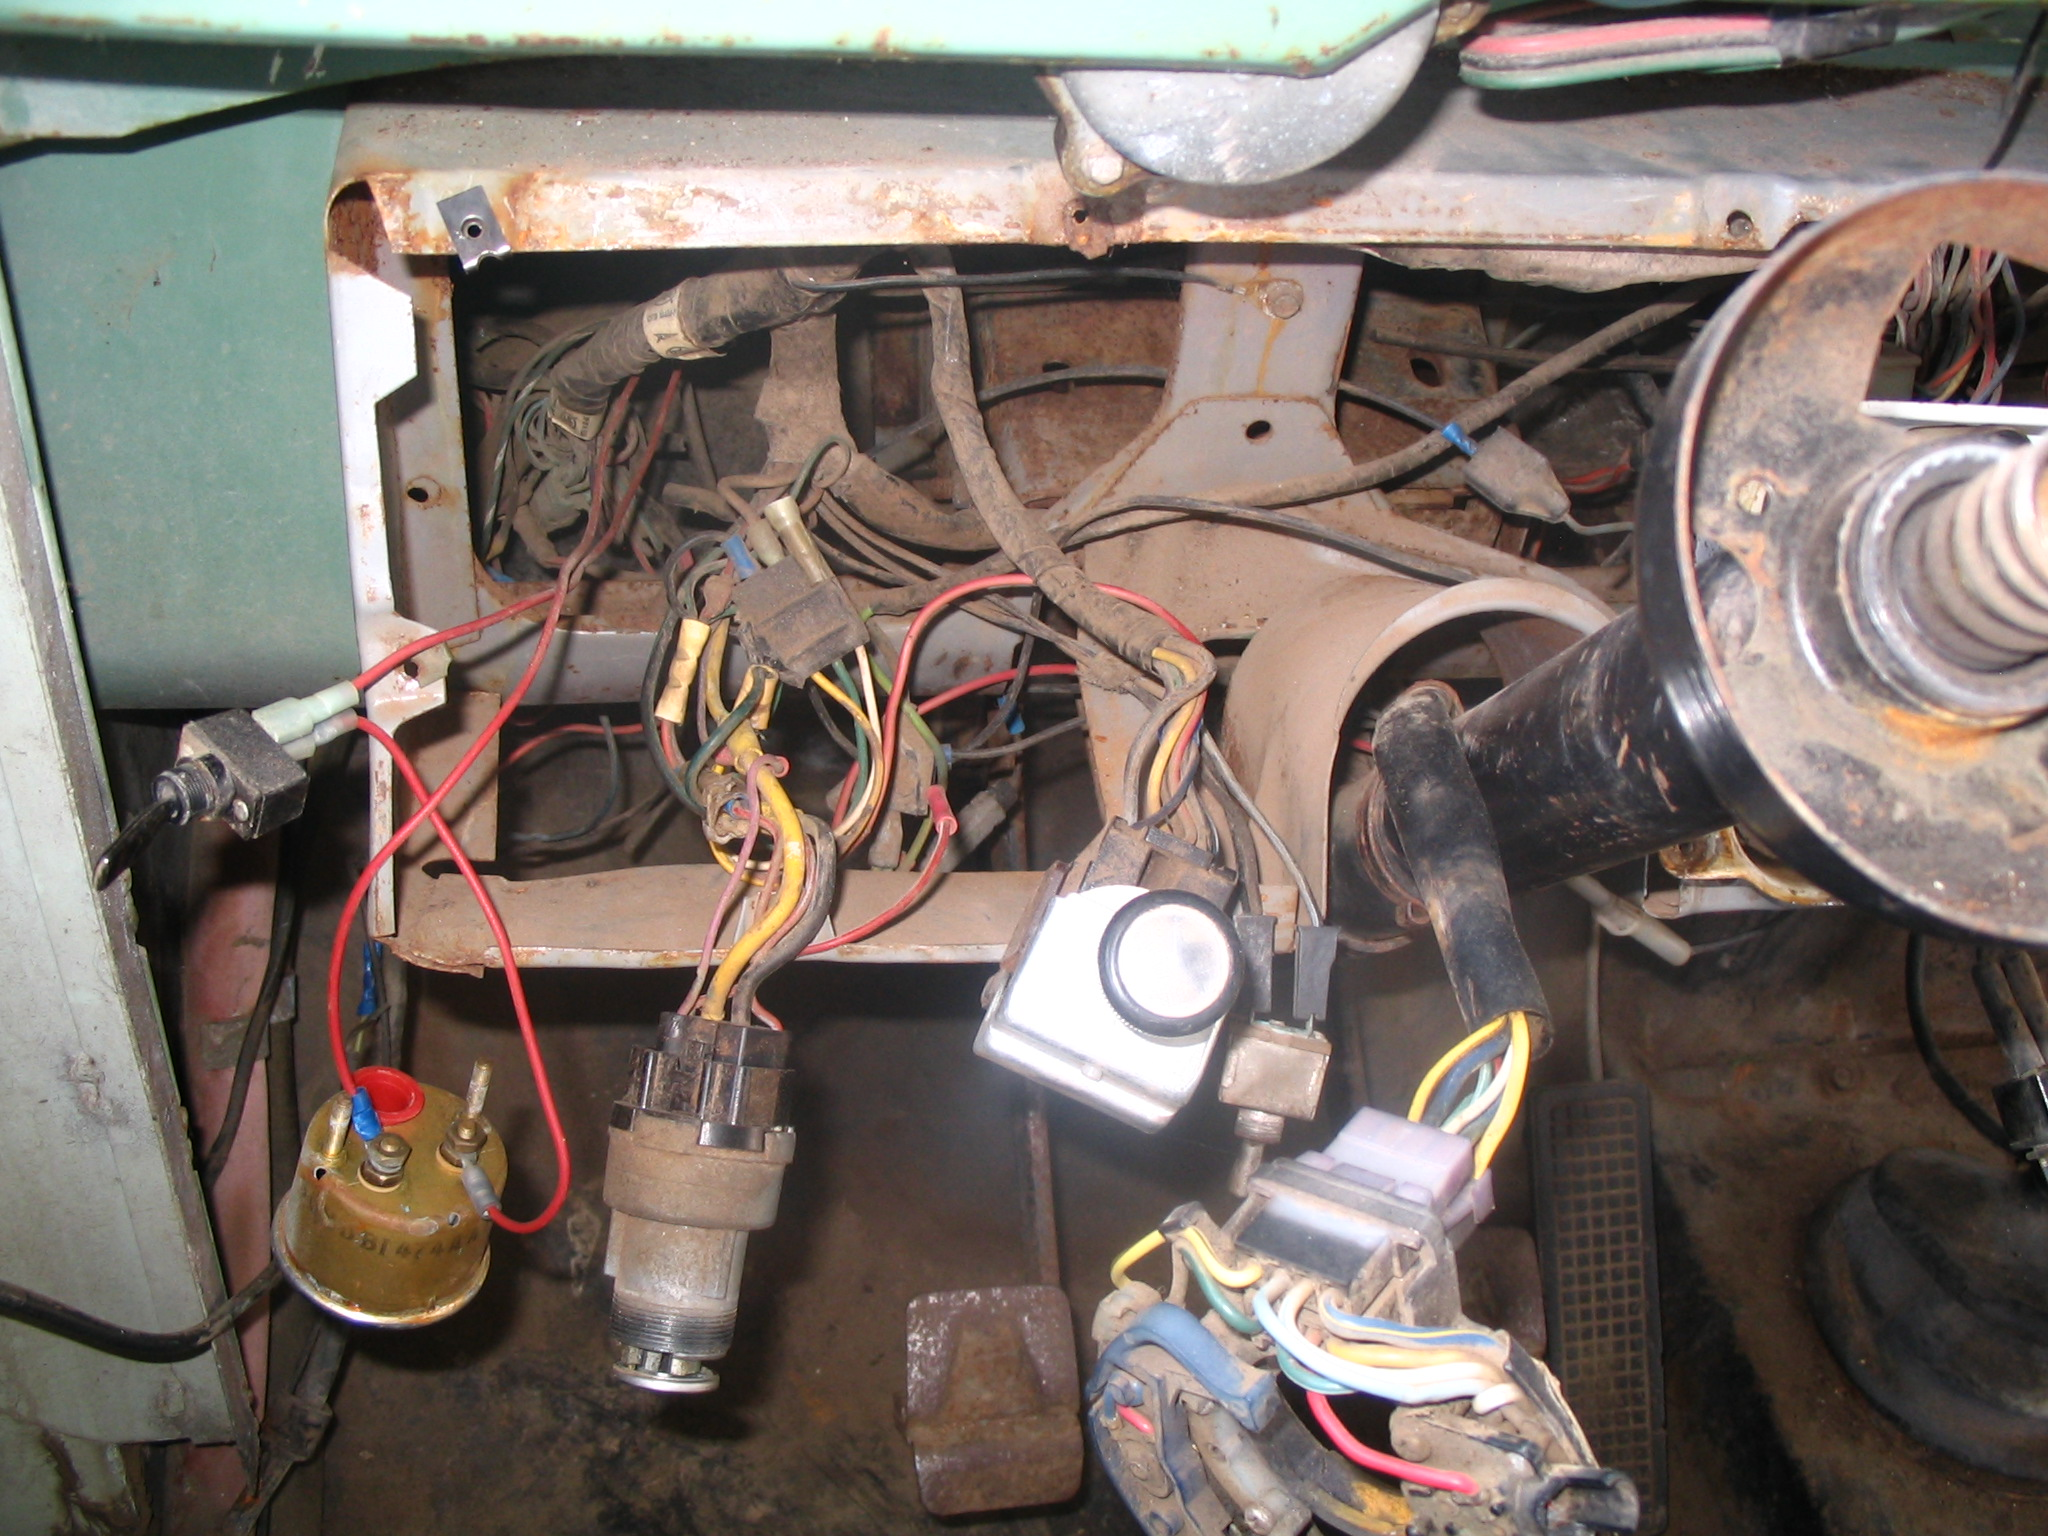 wiring%20rats%20nest